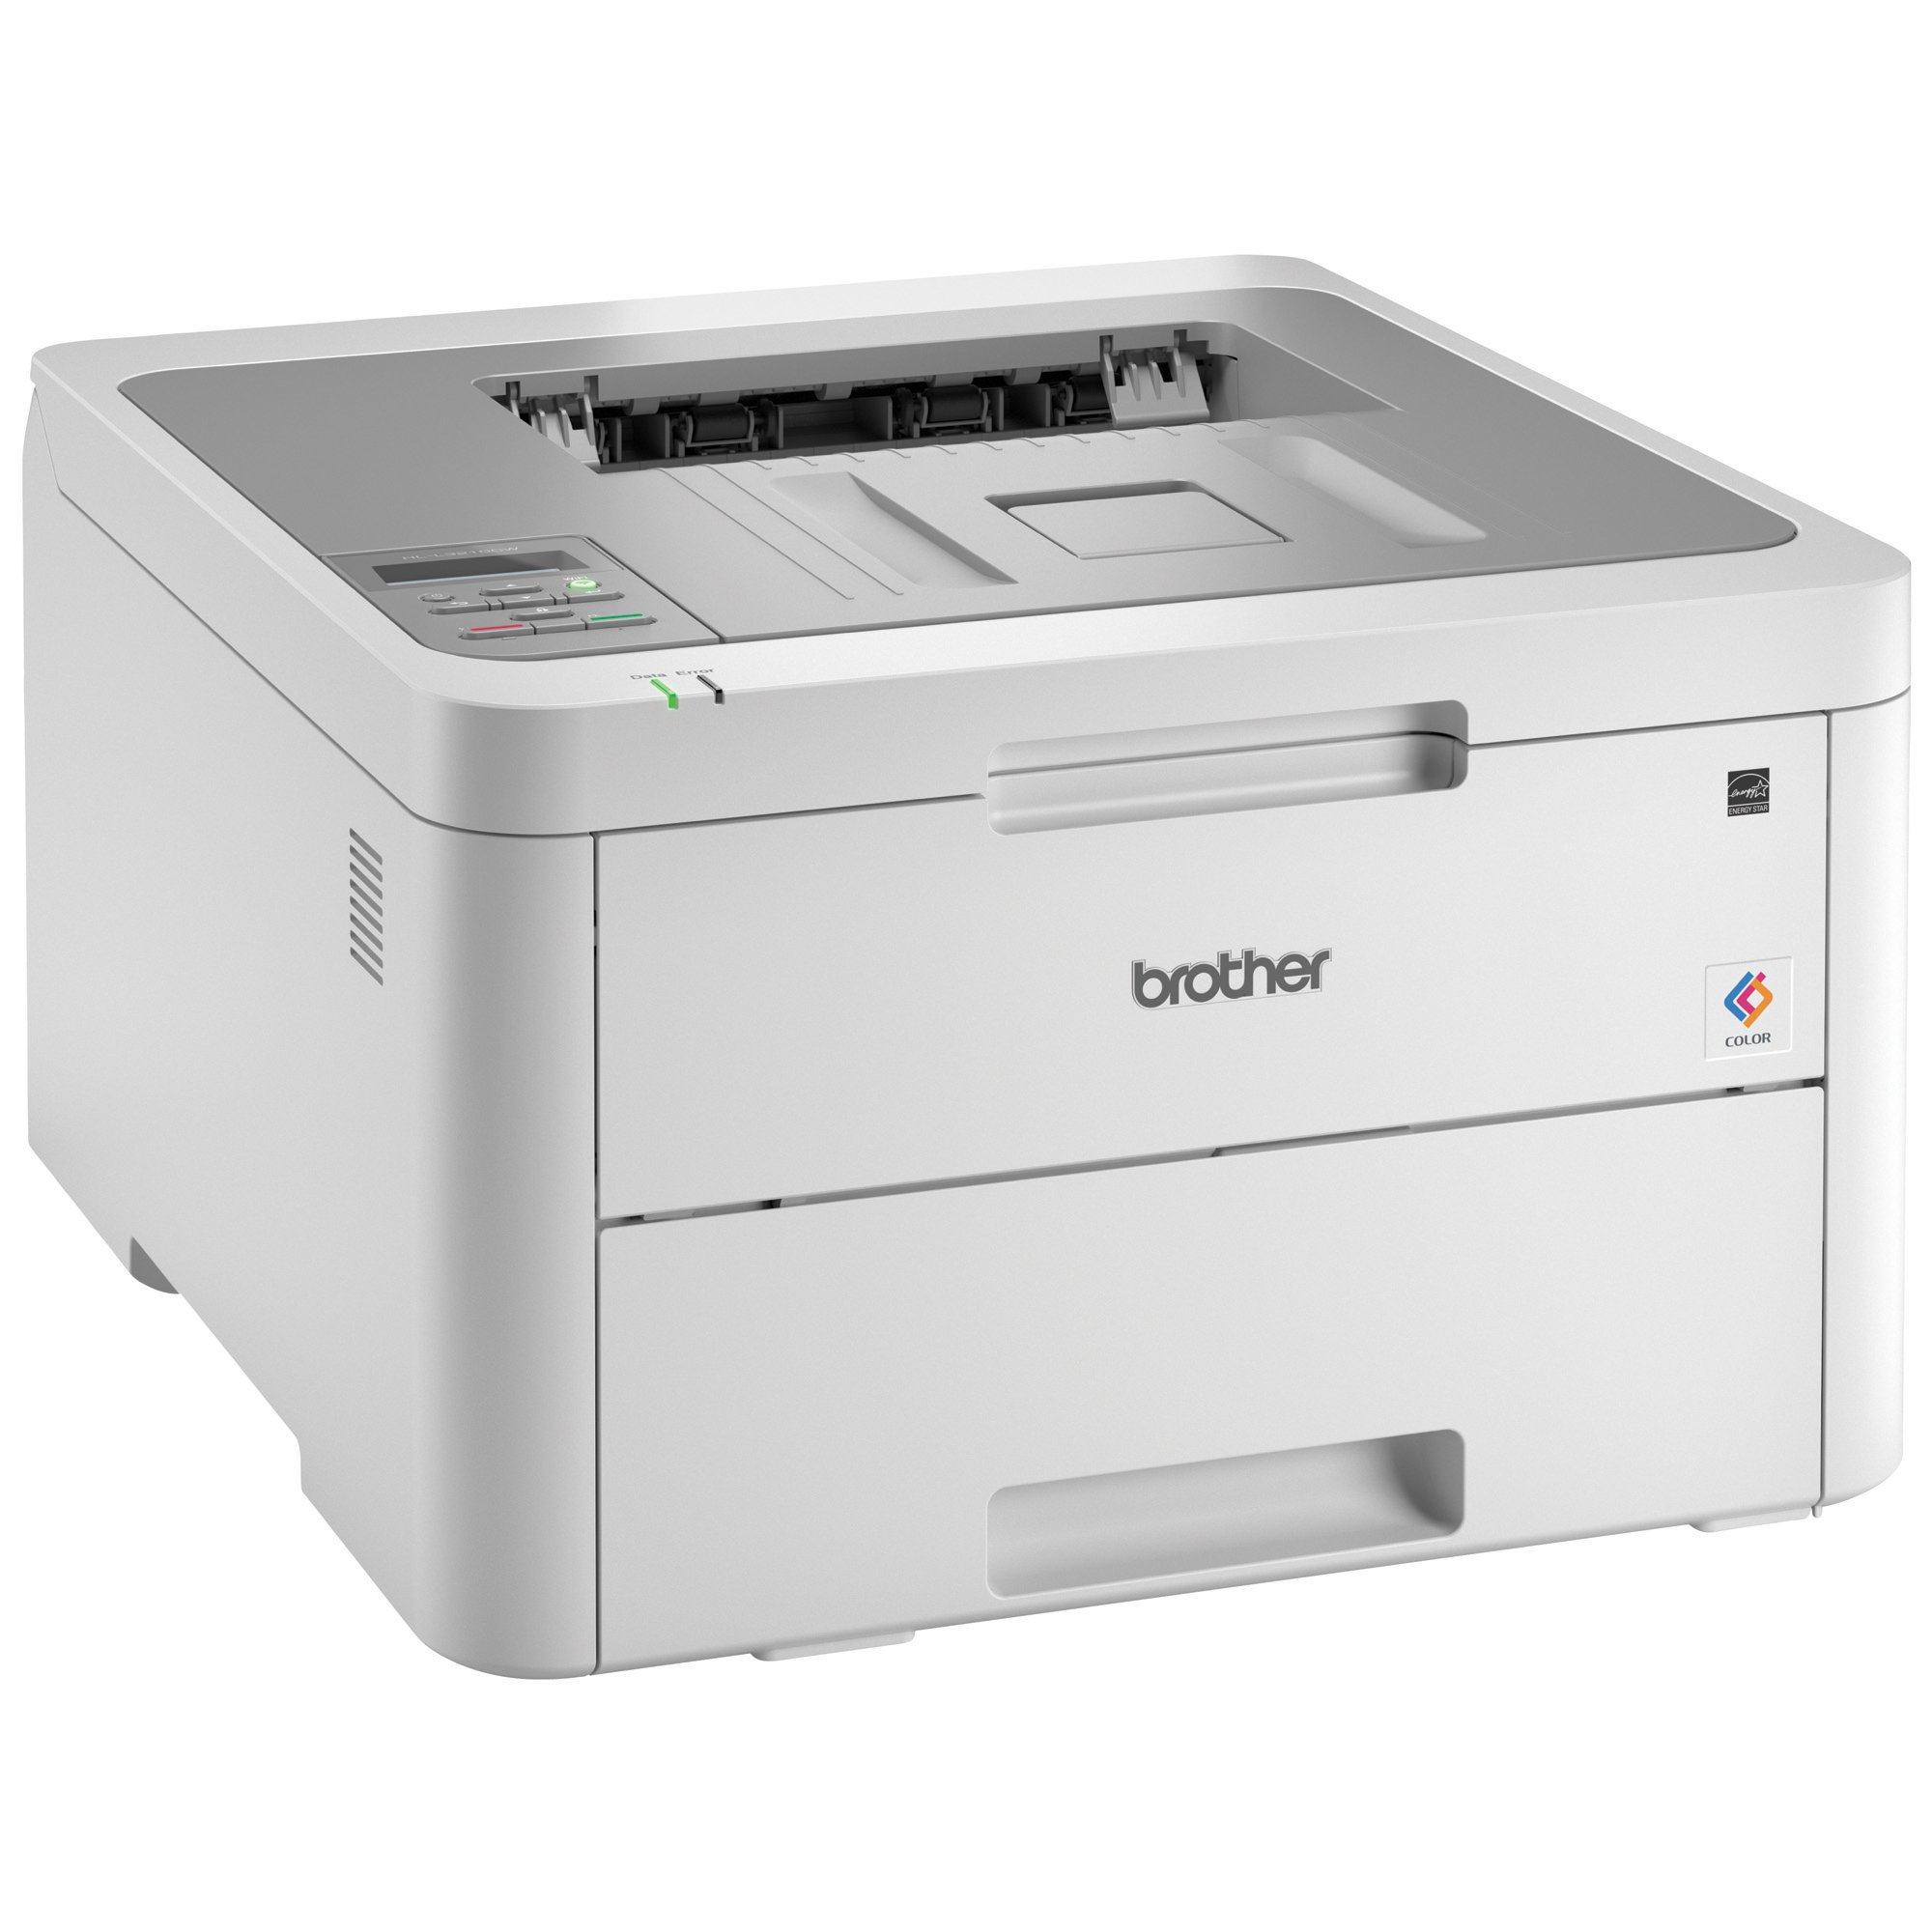 Brother HL-L3210CW Compact Digital Color Printer Providing Laser Printer Quality Results with Wireless, Amazon Dash Replenishment Enabled, White by Brother (Image #9)